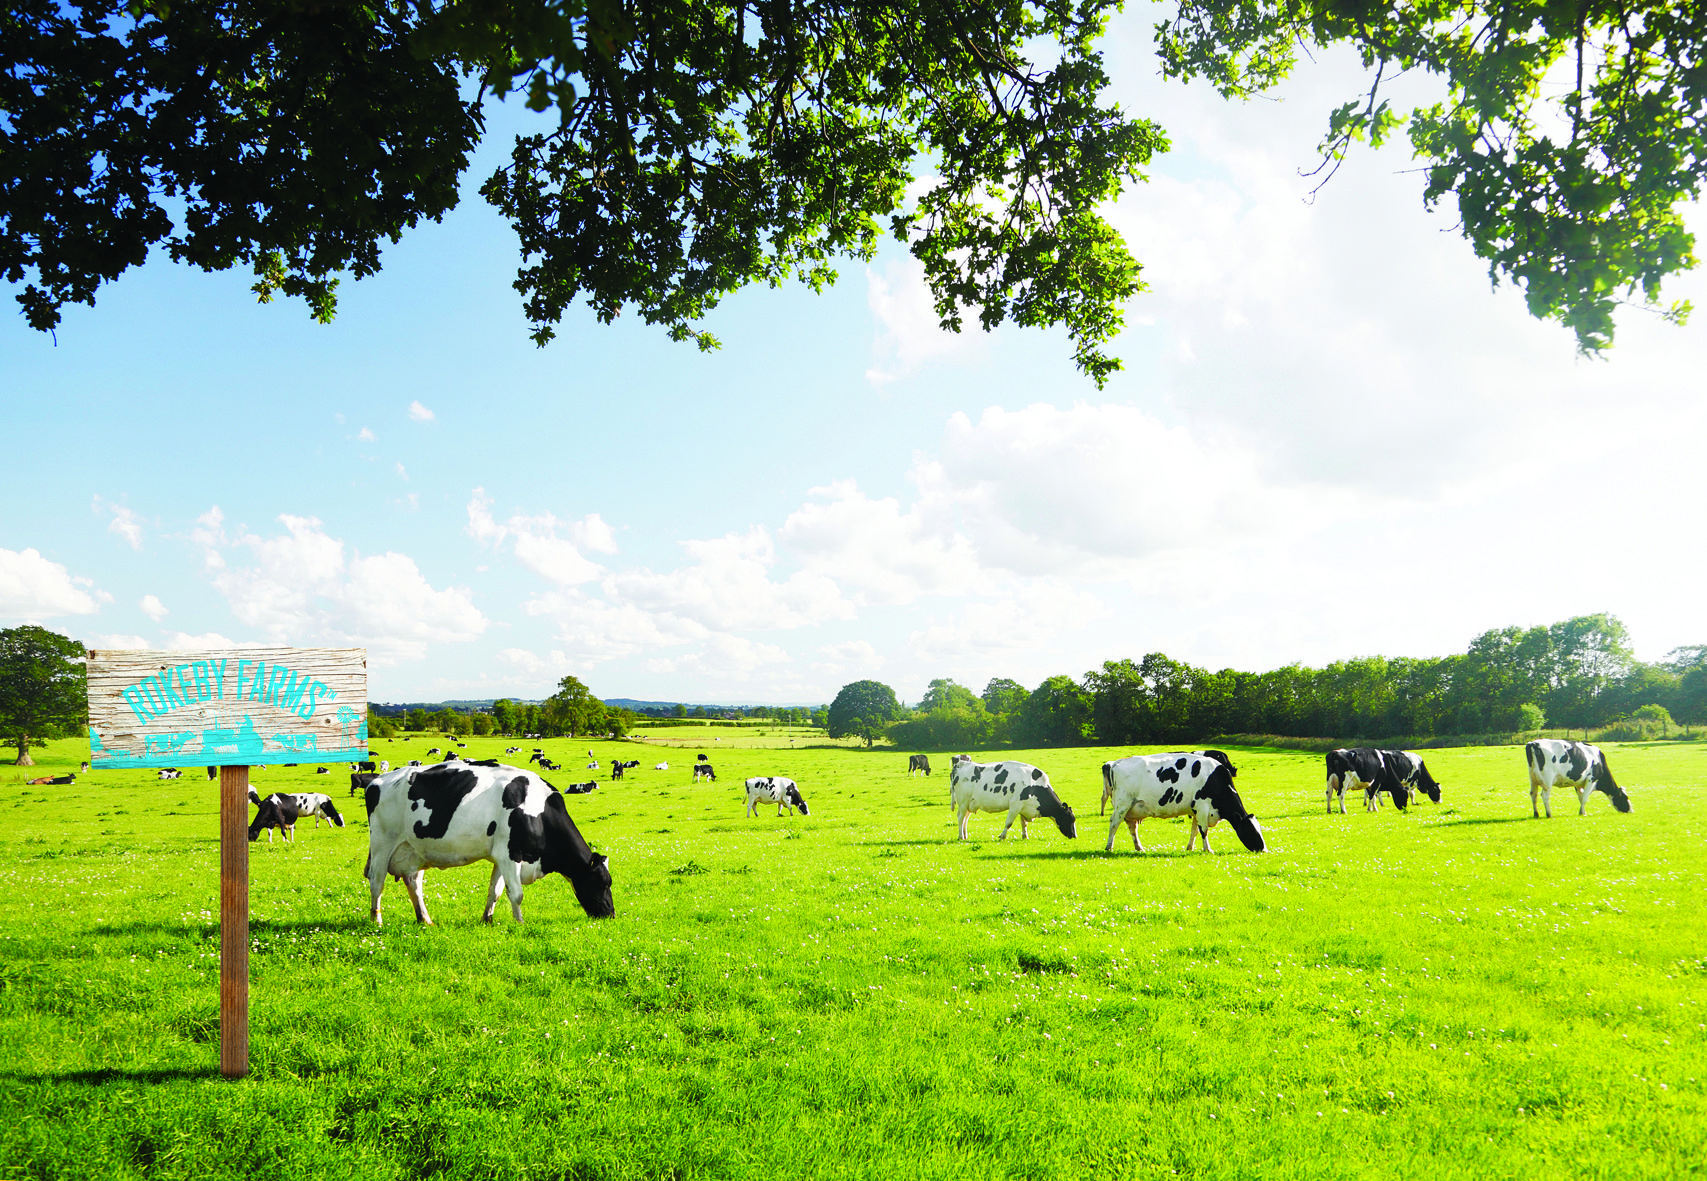 to Rokeby Farms. We source quality fresh dairy